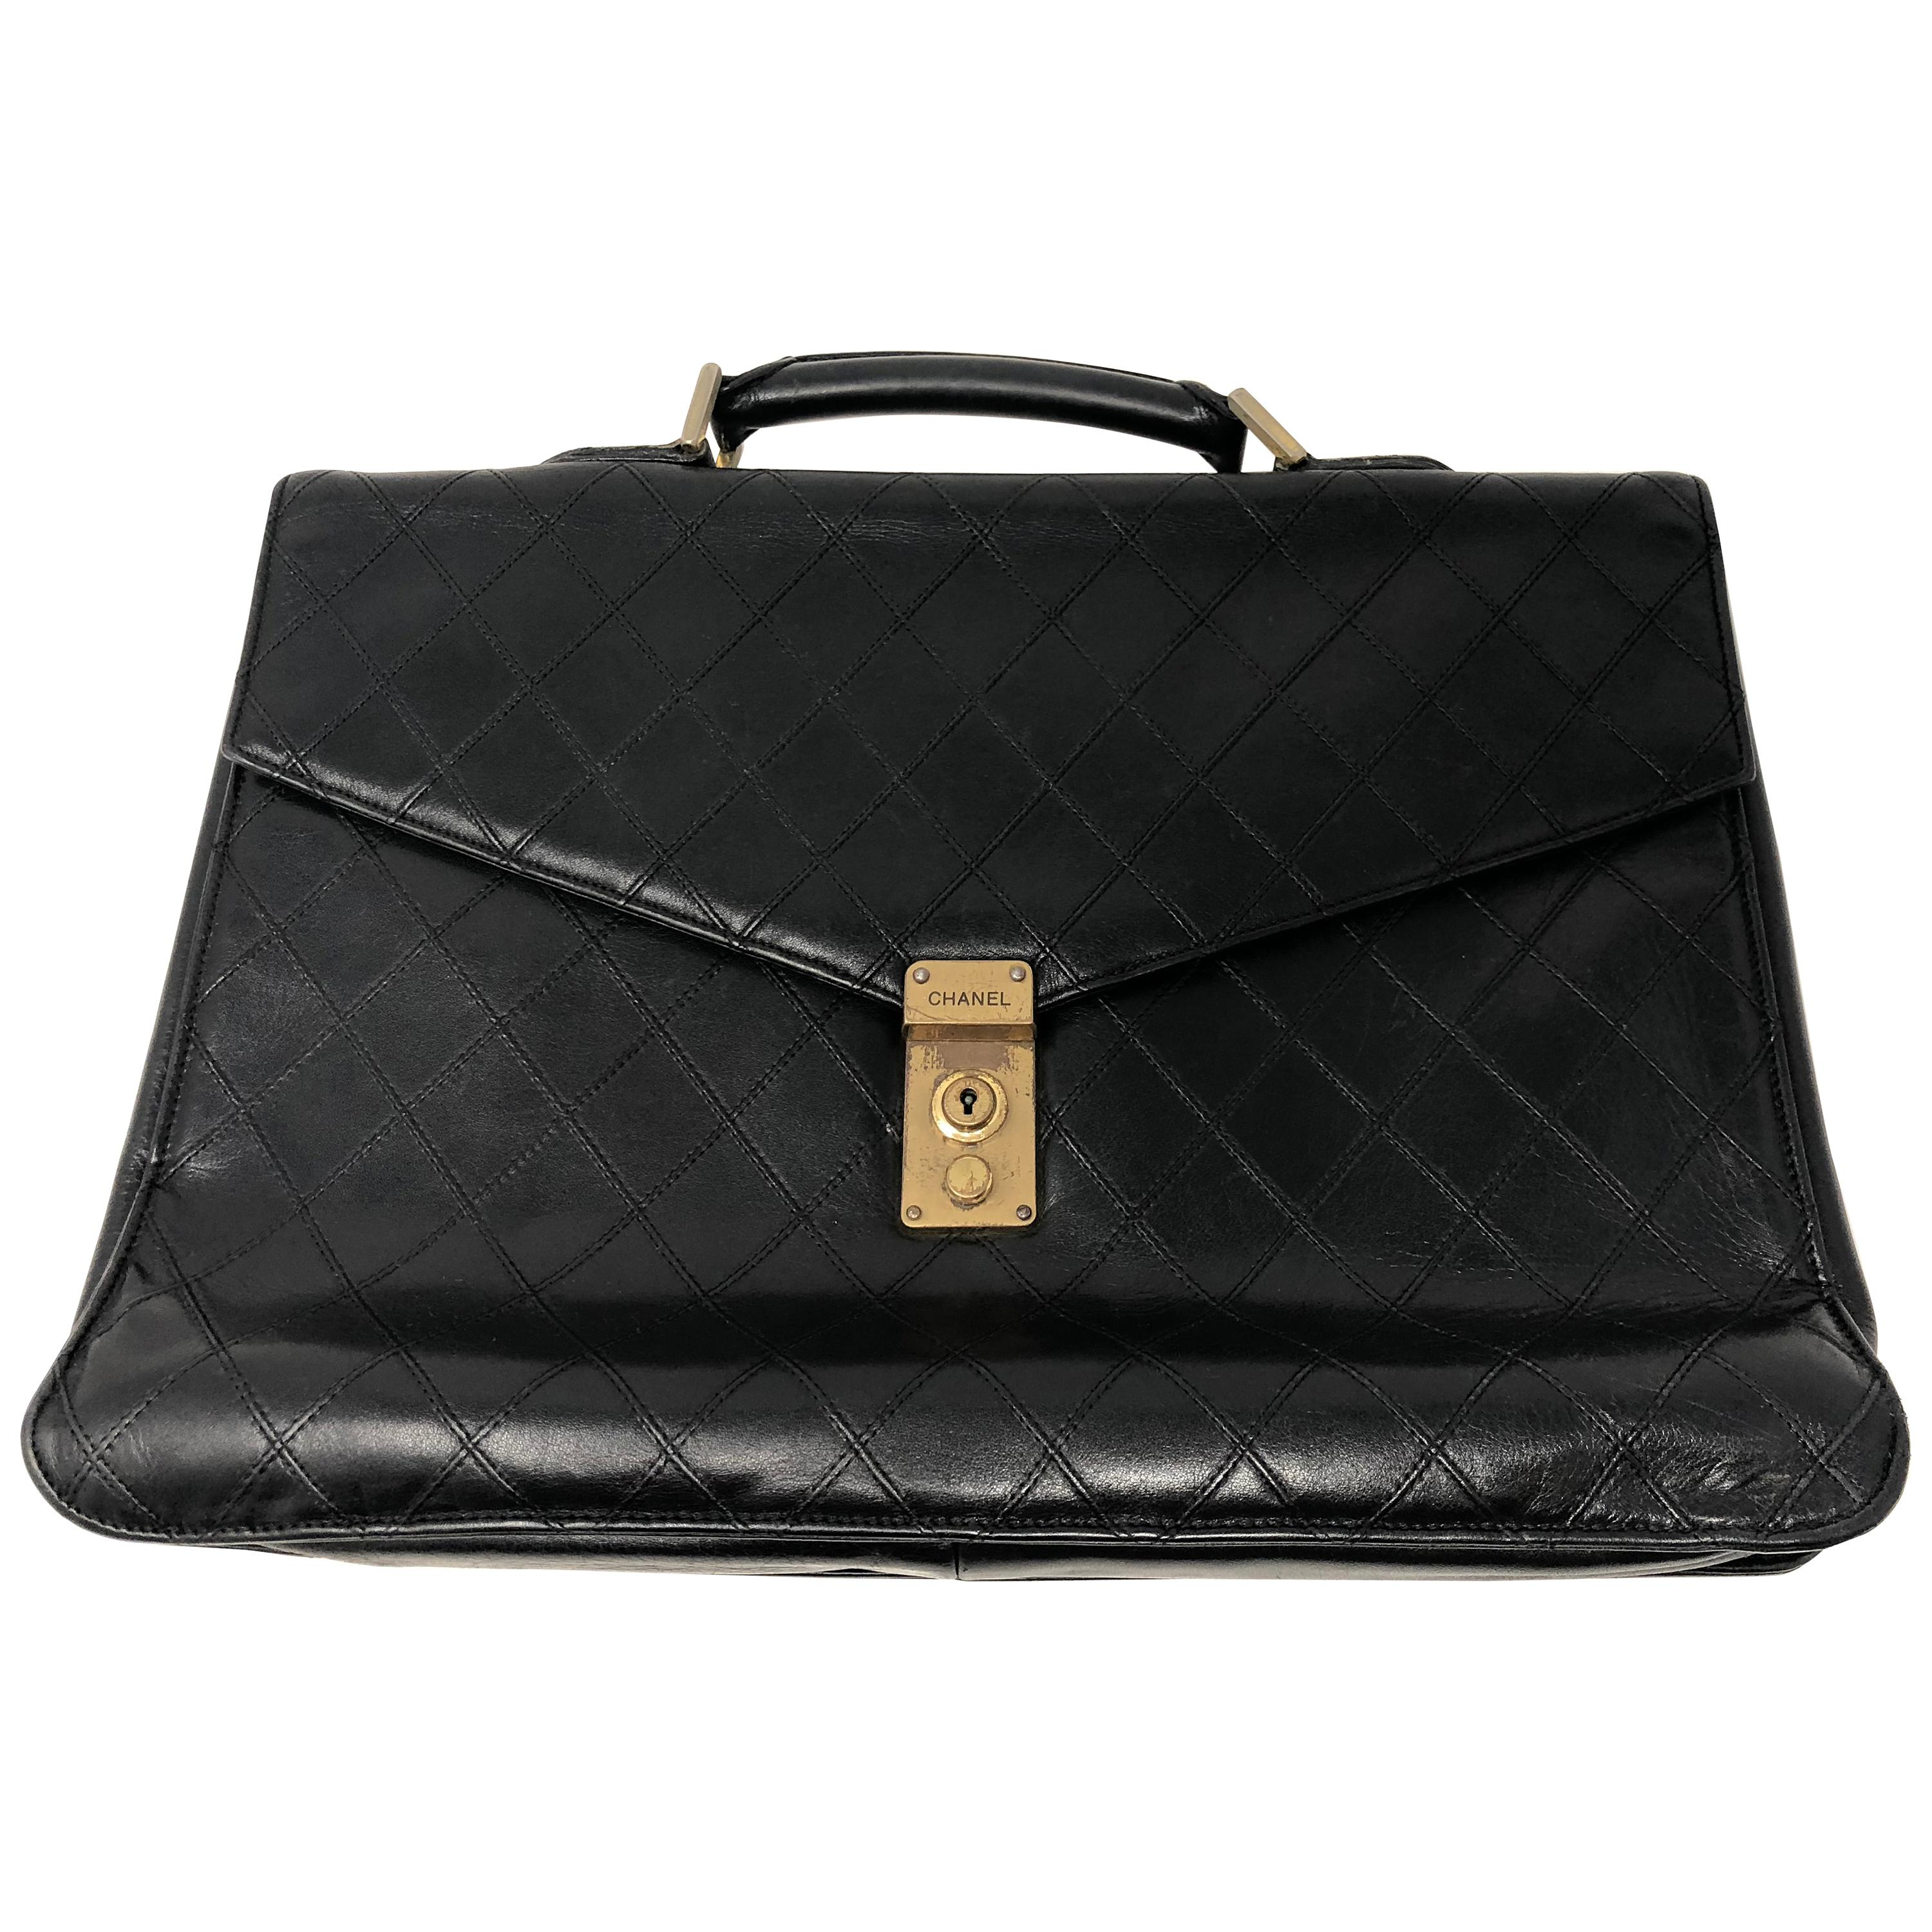 Chanel Back Leather Top Handle Men's Women'